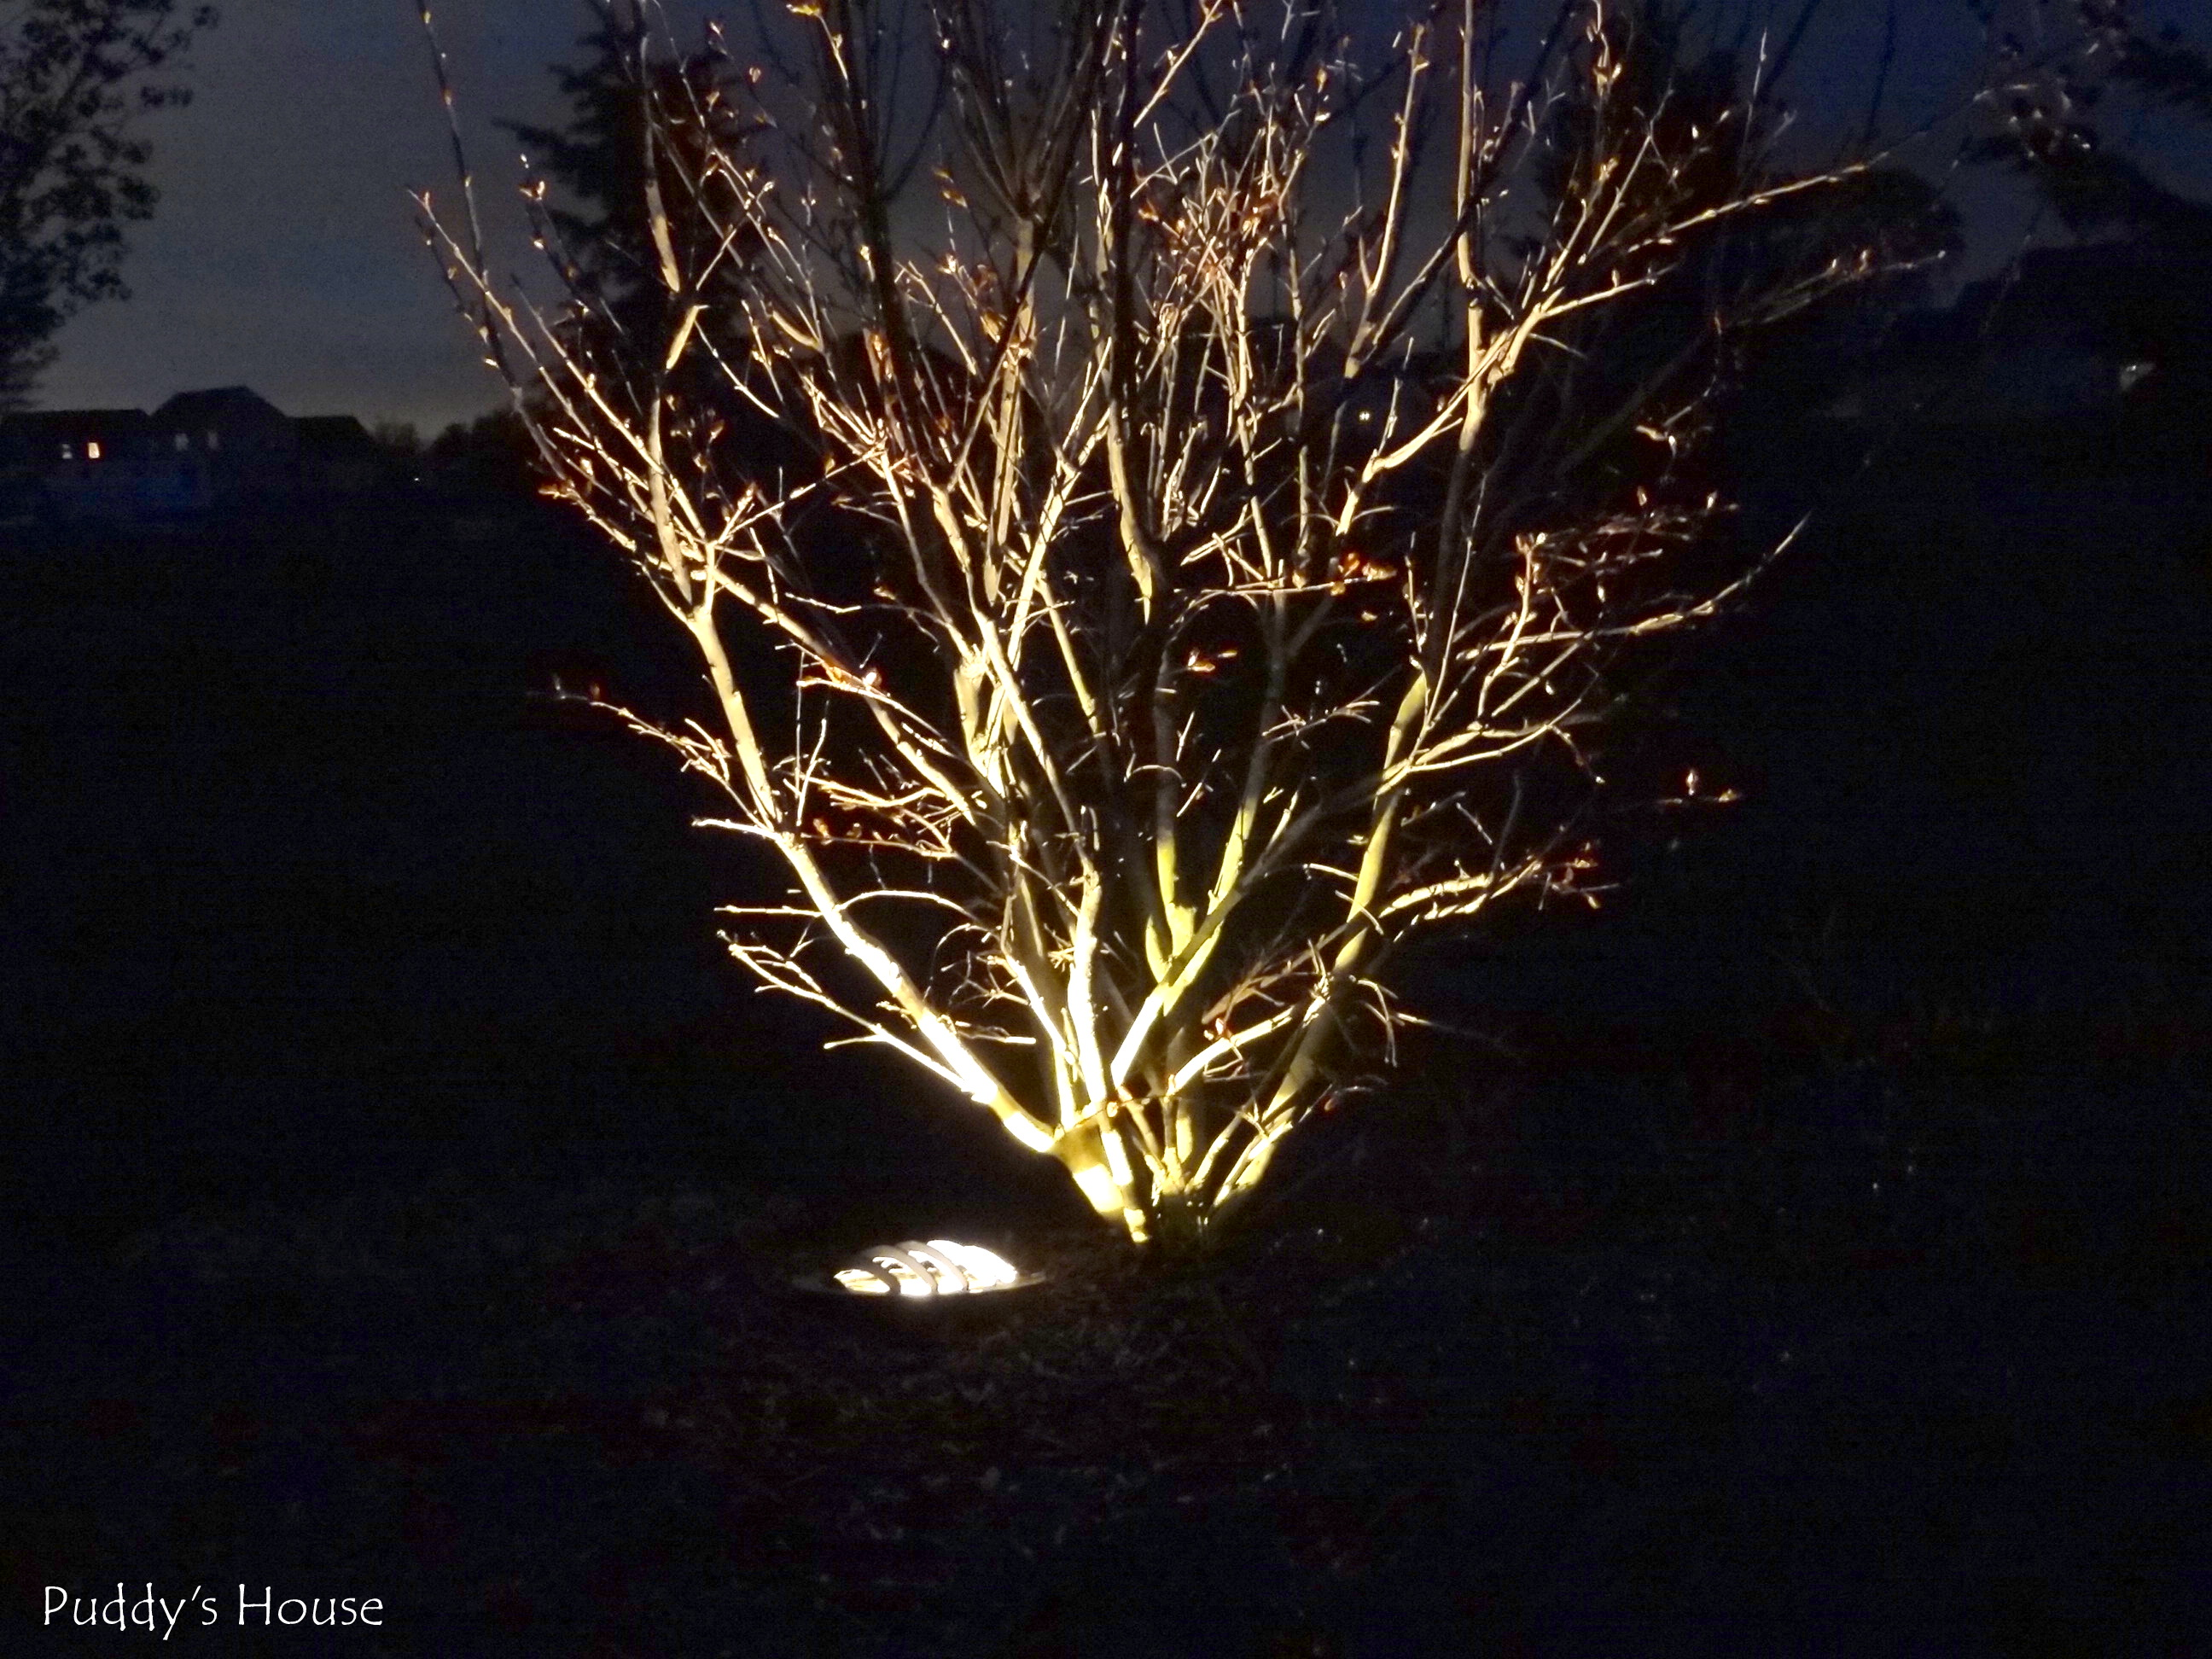 diy landscape lights crape myrtle 2 at night - Solar Landscape Lights